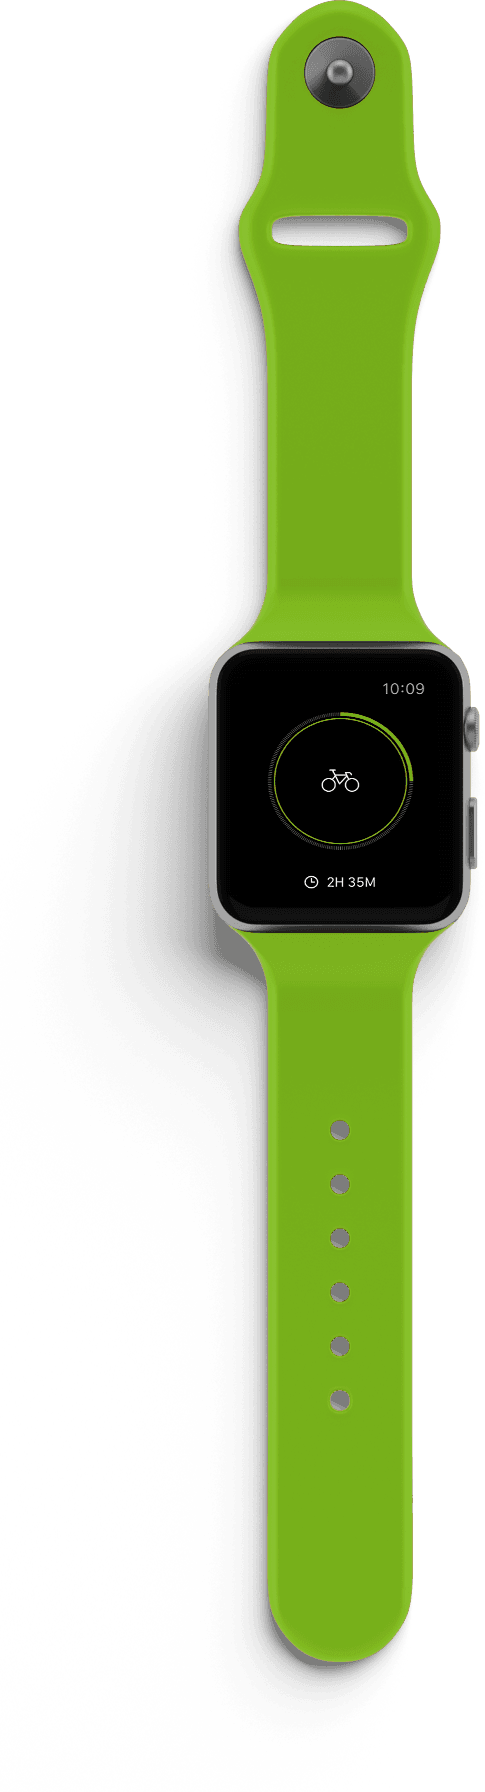 Toerisme Limburg smartwatch application